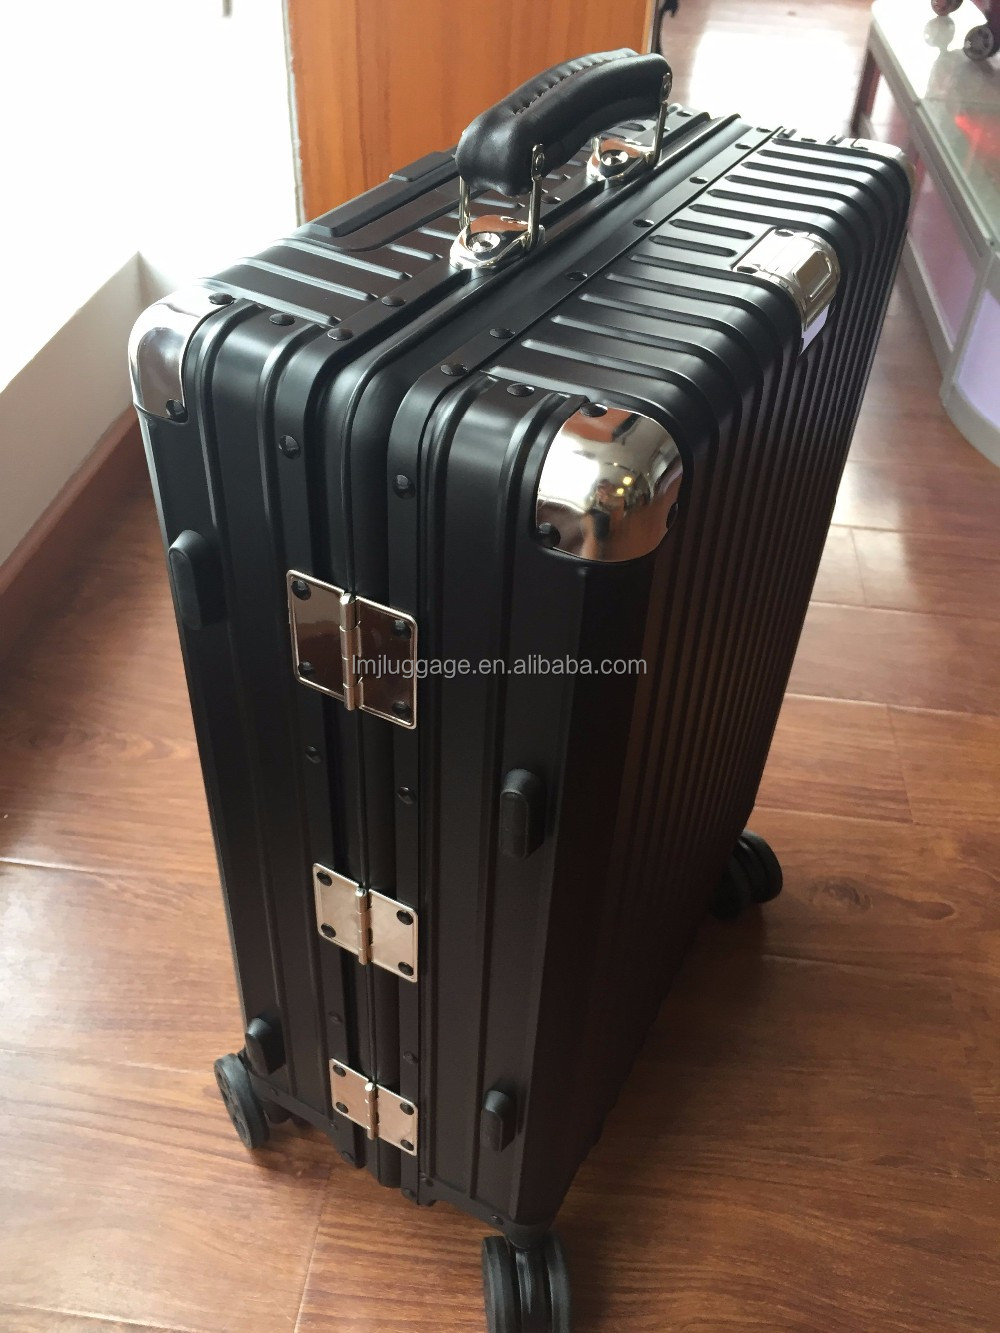 Vintage retro style aluminum alloy travel trolley suitcase luggage bags & cases